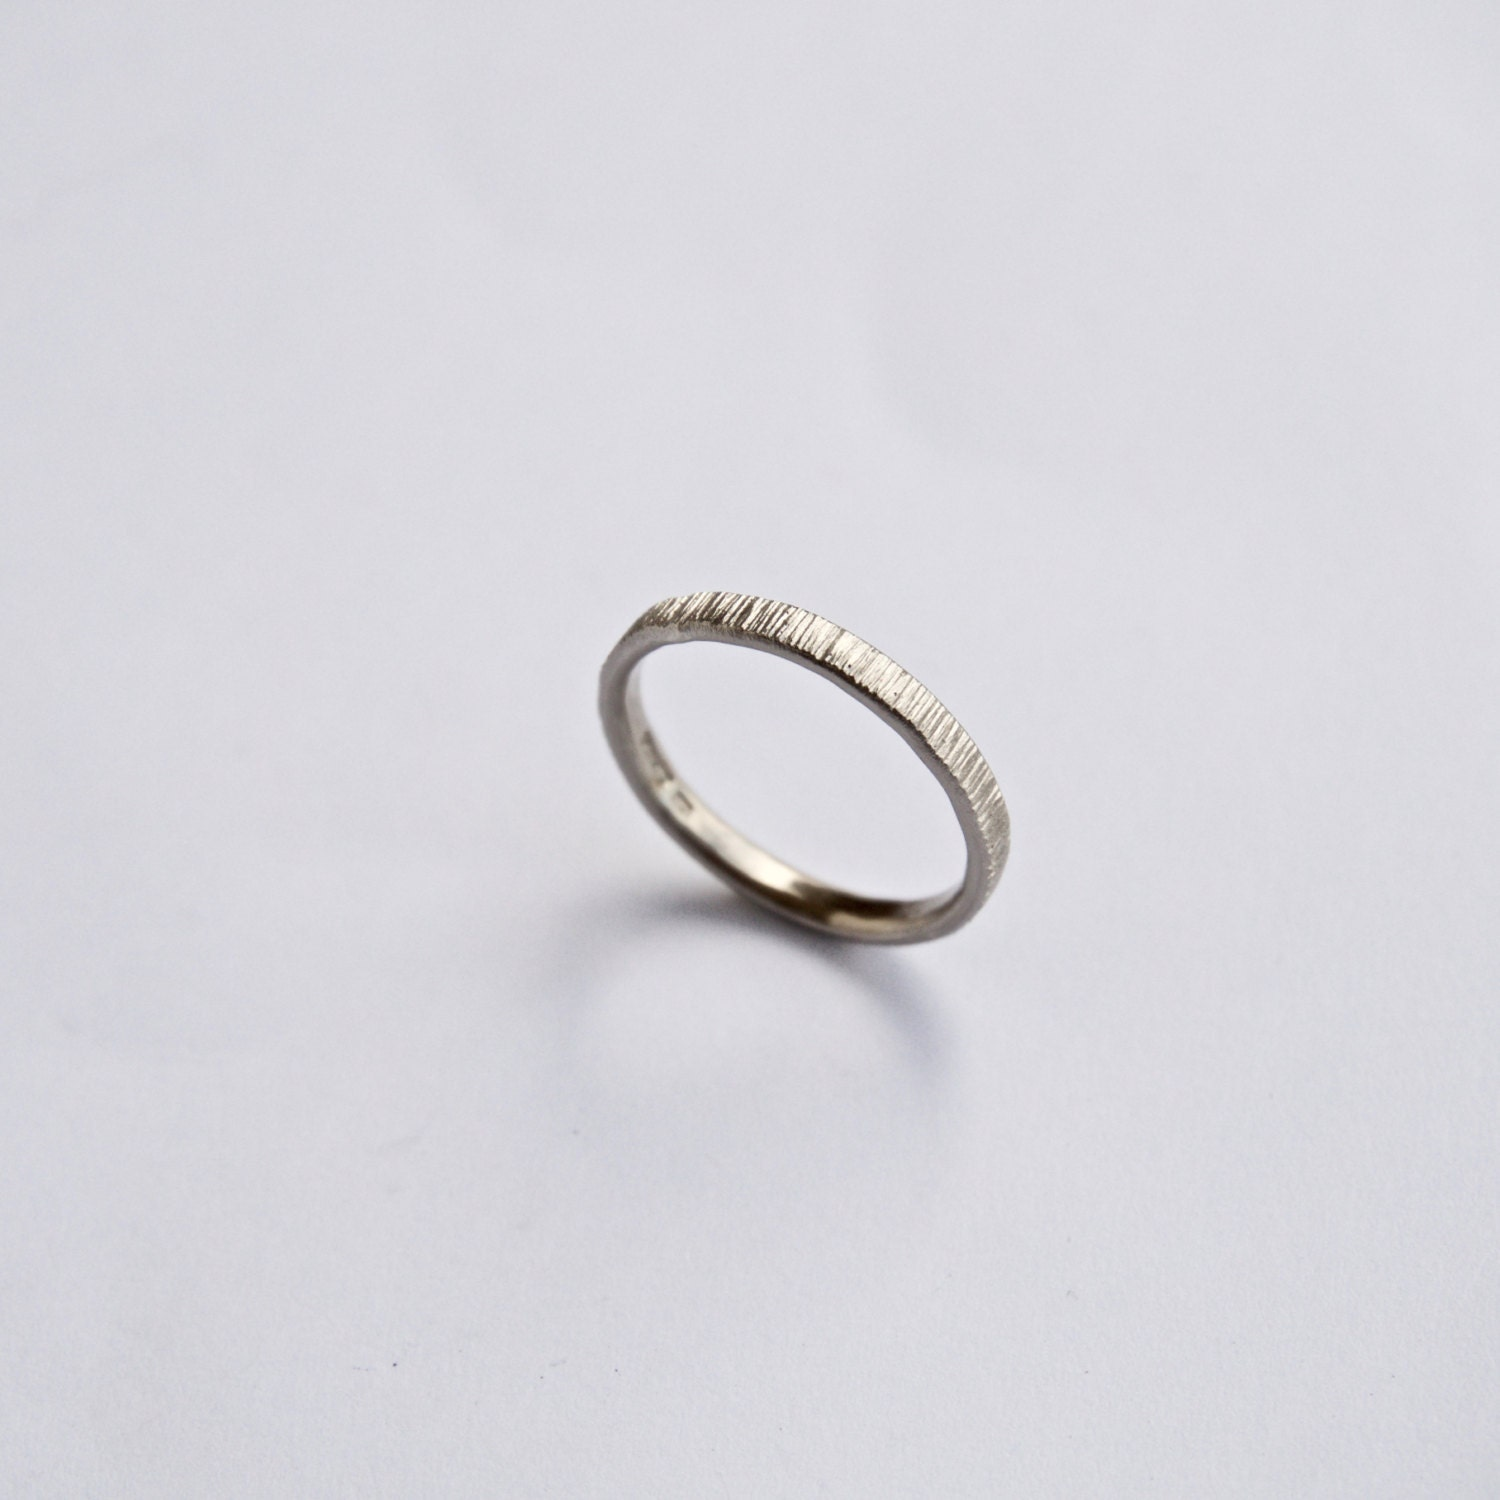 bands on solid wedding skinny dainty pin thin gold suzansmarket by shipping ring delicate free jewelry band stacking wire